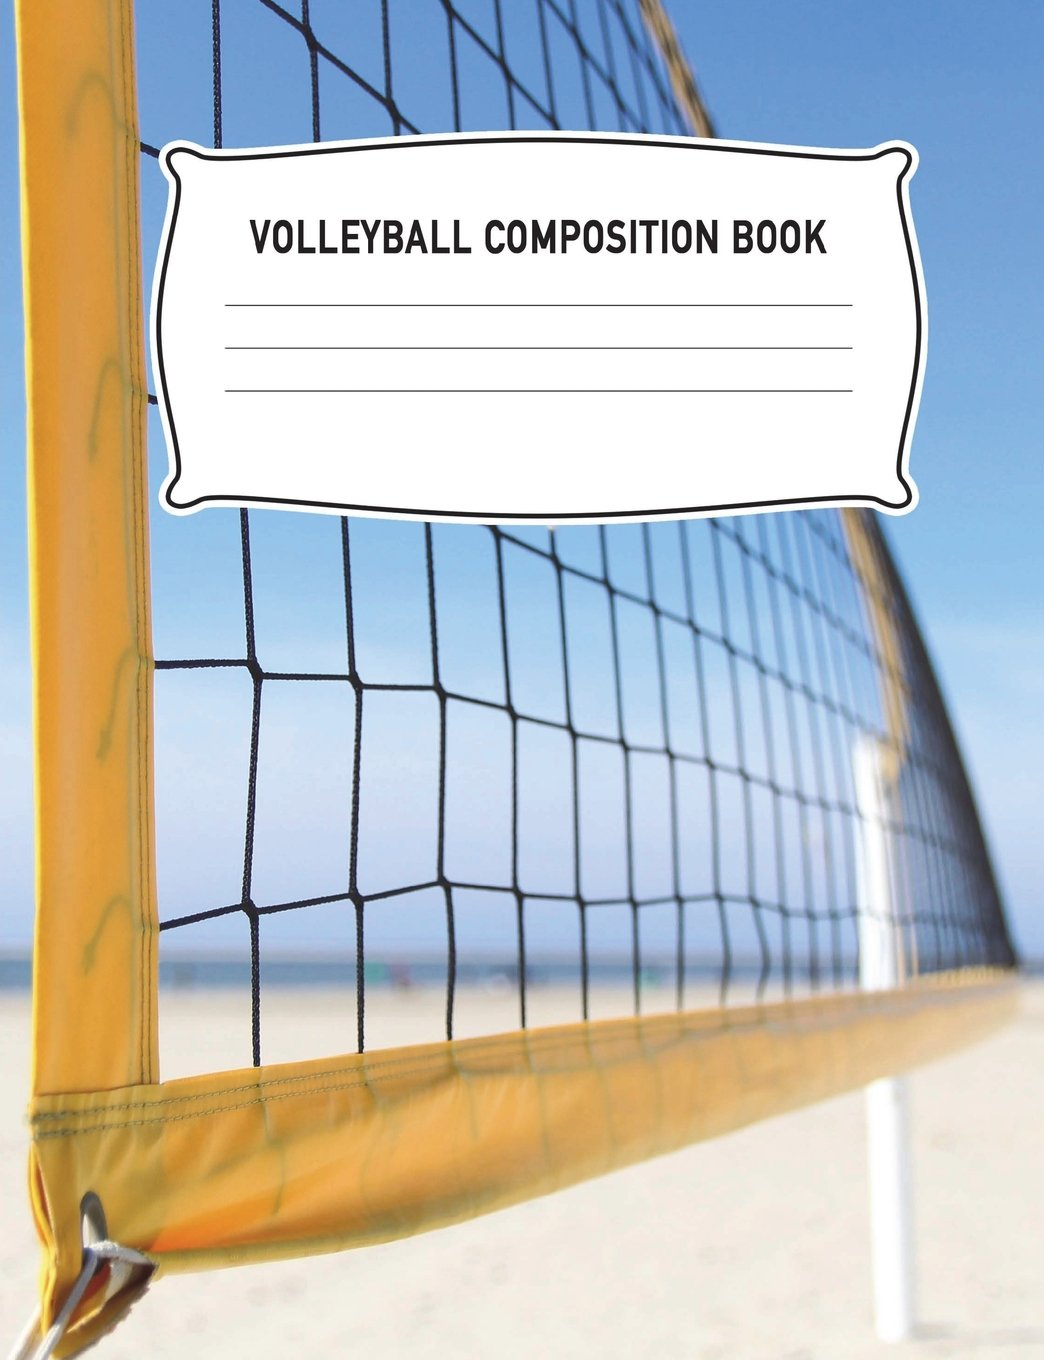 Volleyball Composition Book: Net Notebook College Ruled Writing Diary Practice Journal Sport Player Coach Organizer Youth Kids: High, Middle. School, ... 7.44 x 9.69 Notepad Lined Paper, 100 Pages pdf epub